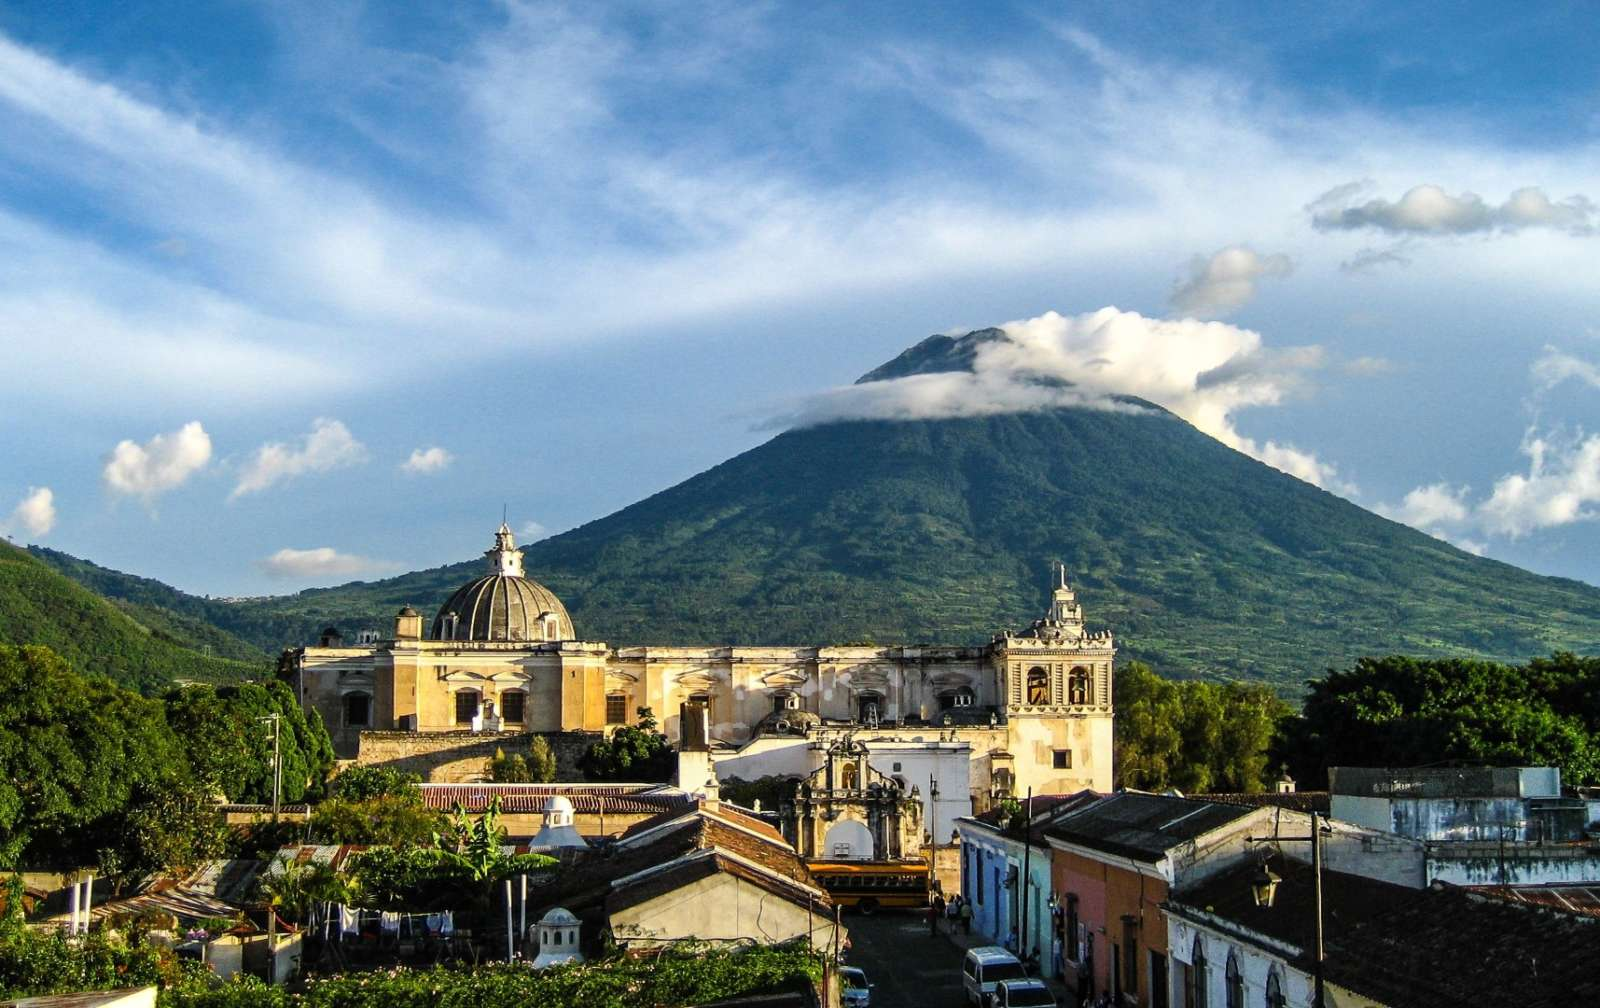 Rooftops of Antigua in Guatemala with volcano in background